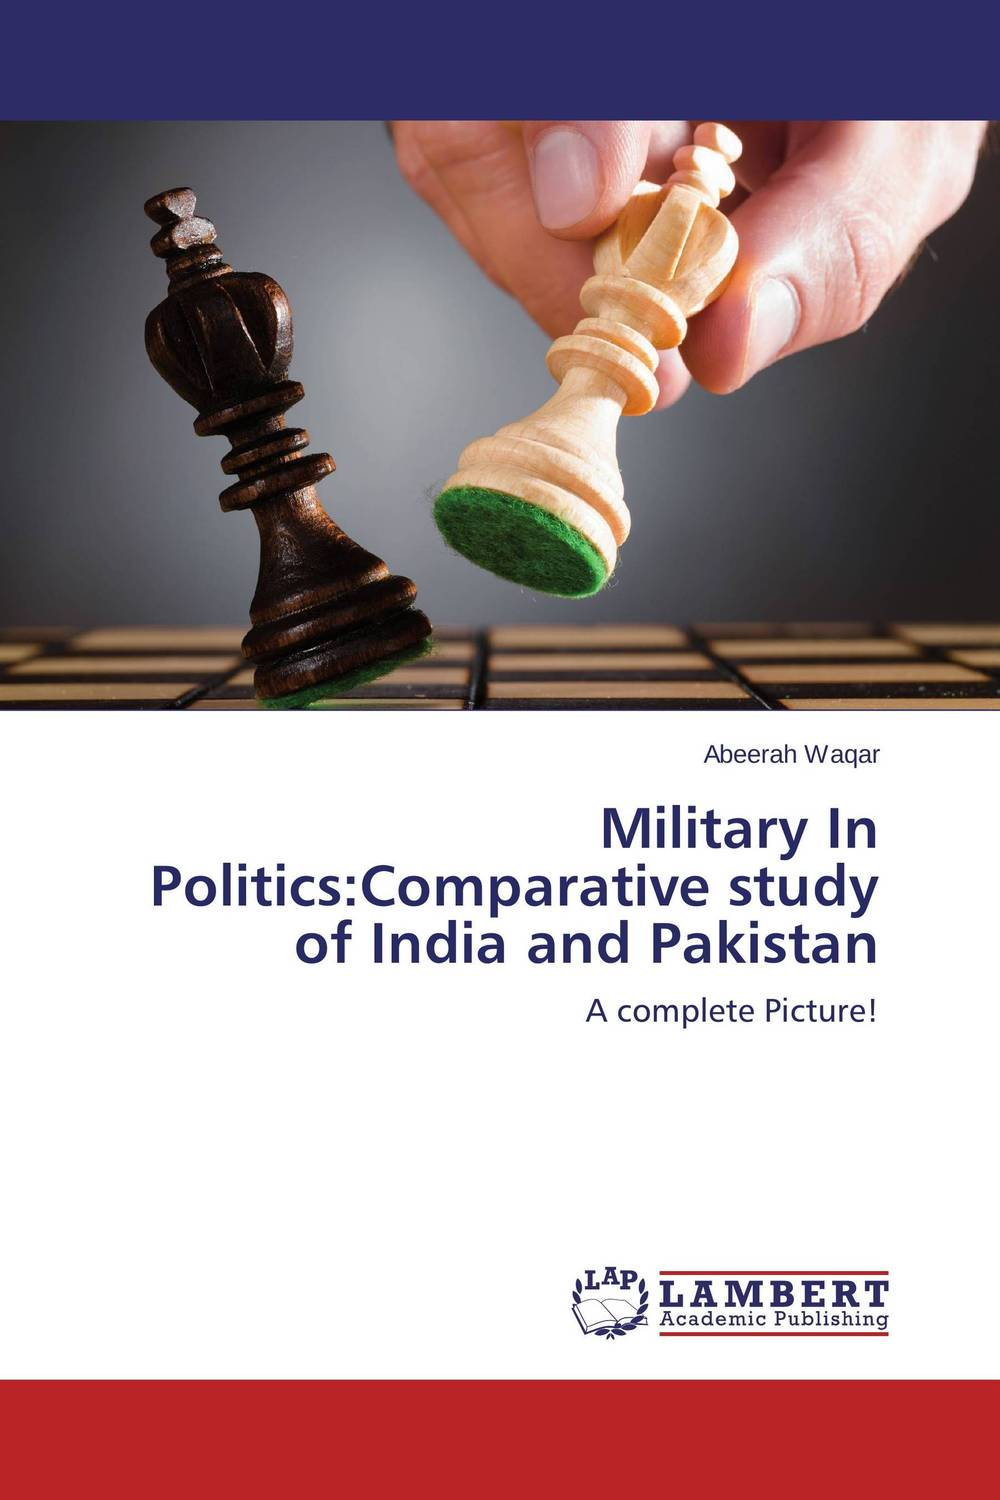 Military In Politics:Comparative study of India and Pakistan strict democracy burning the bridges in politics